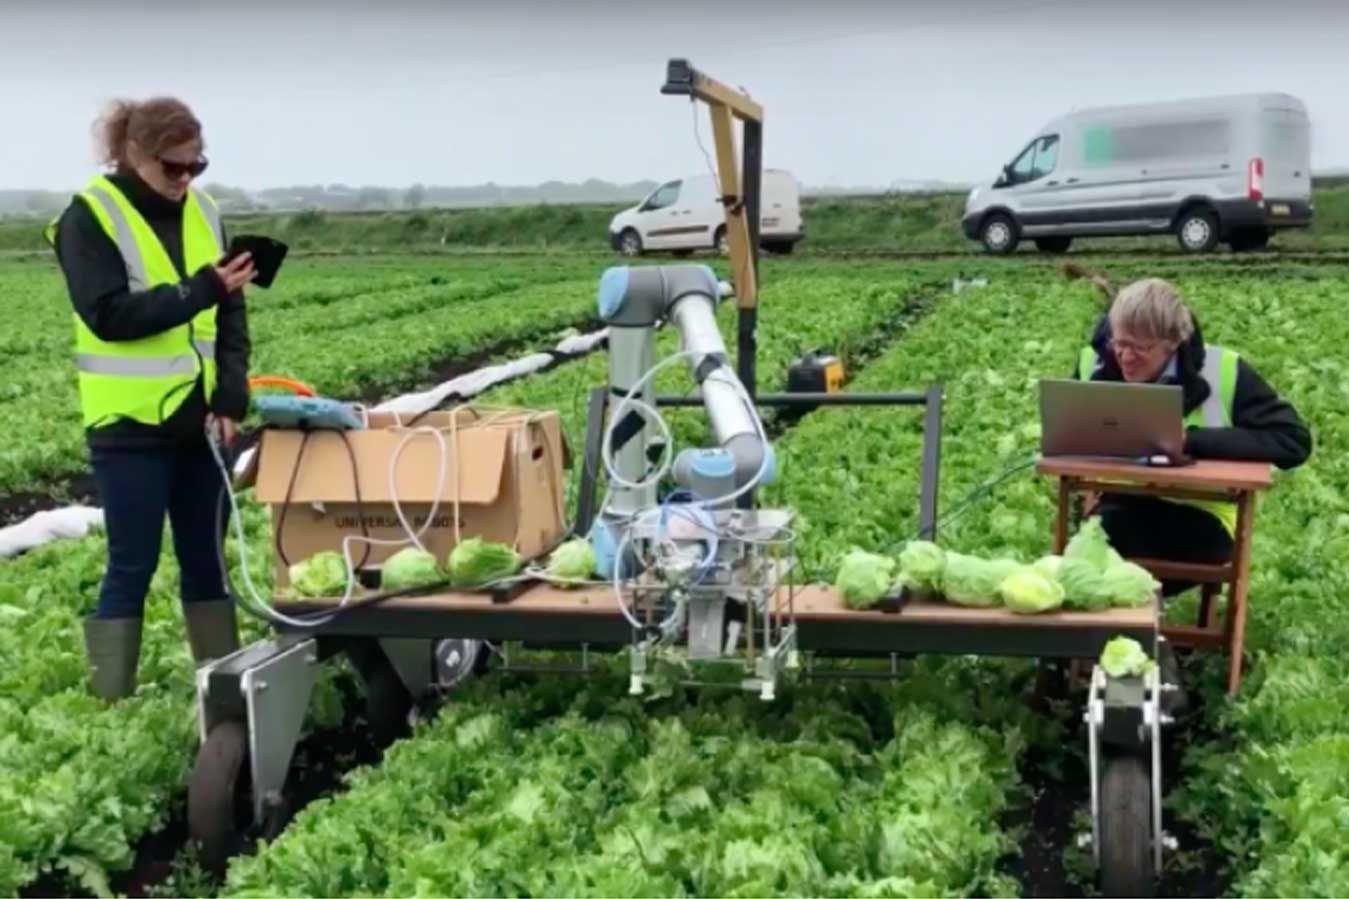 The importance of Automation in Buildings and Farmlands